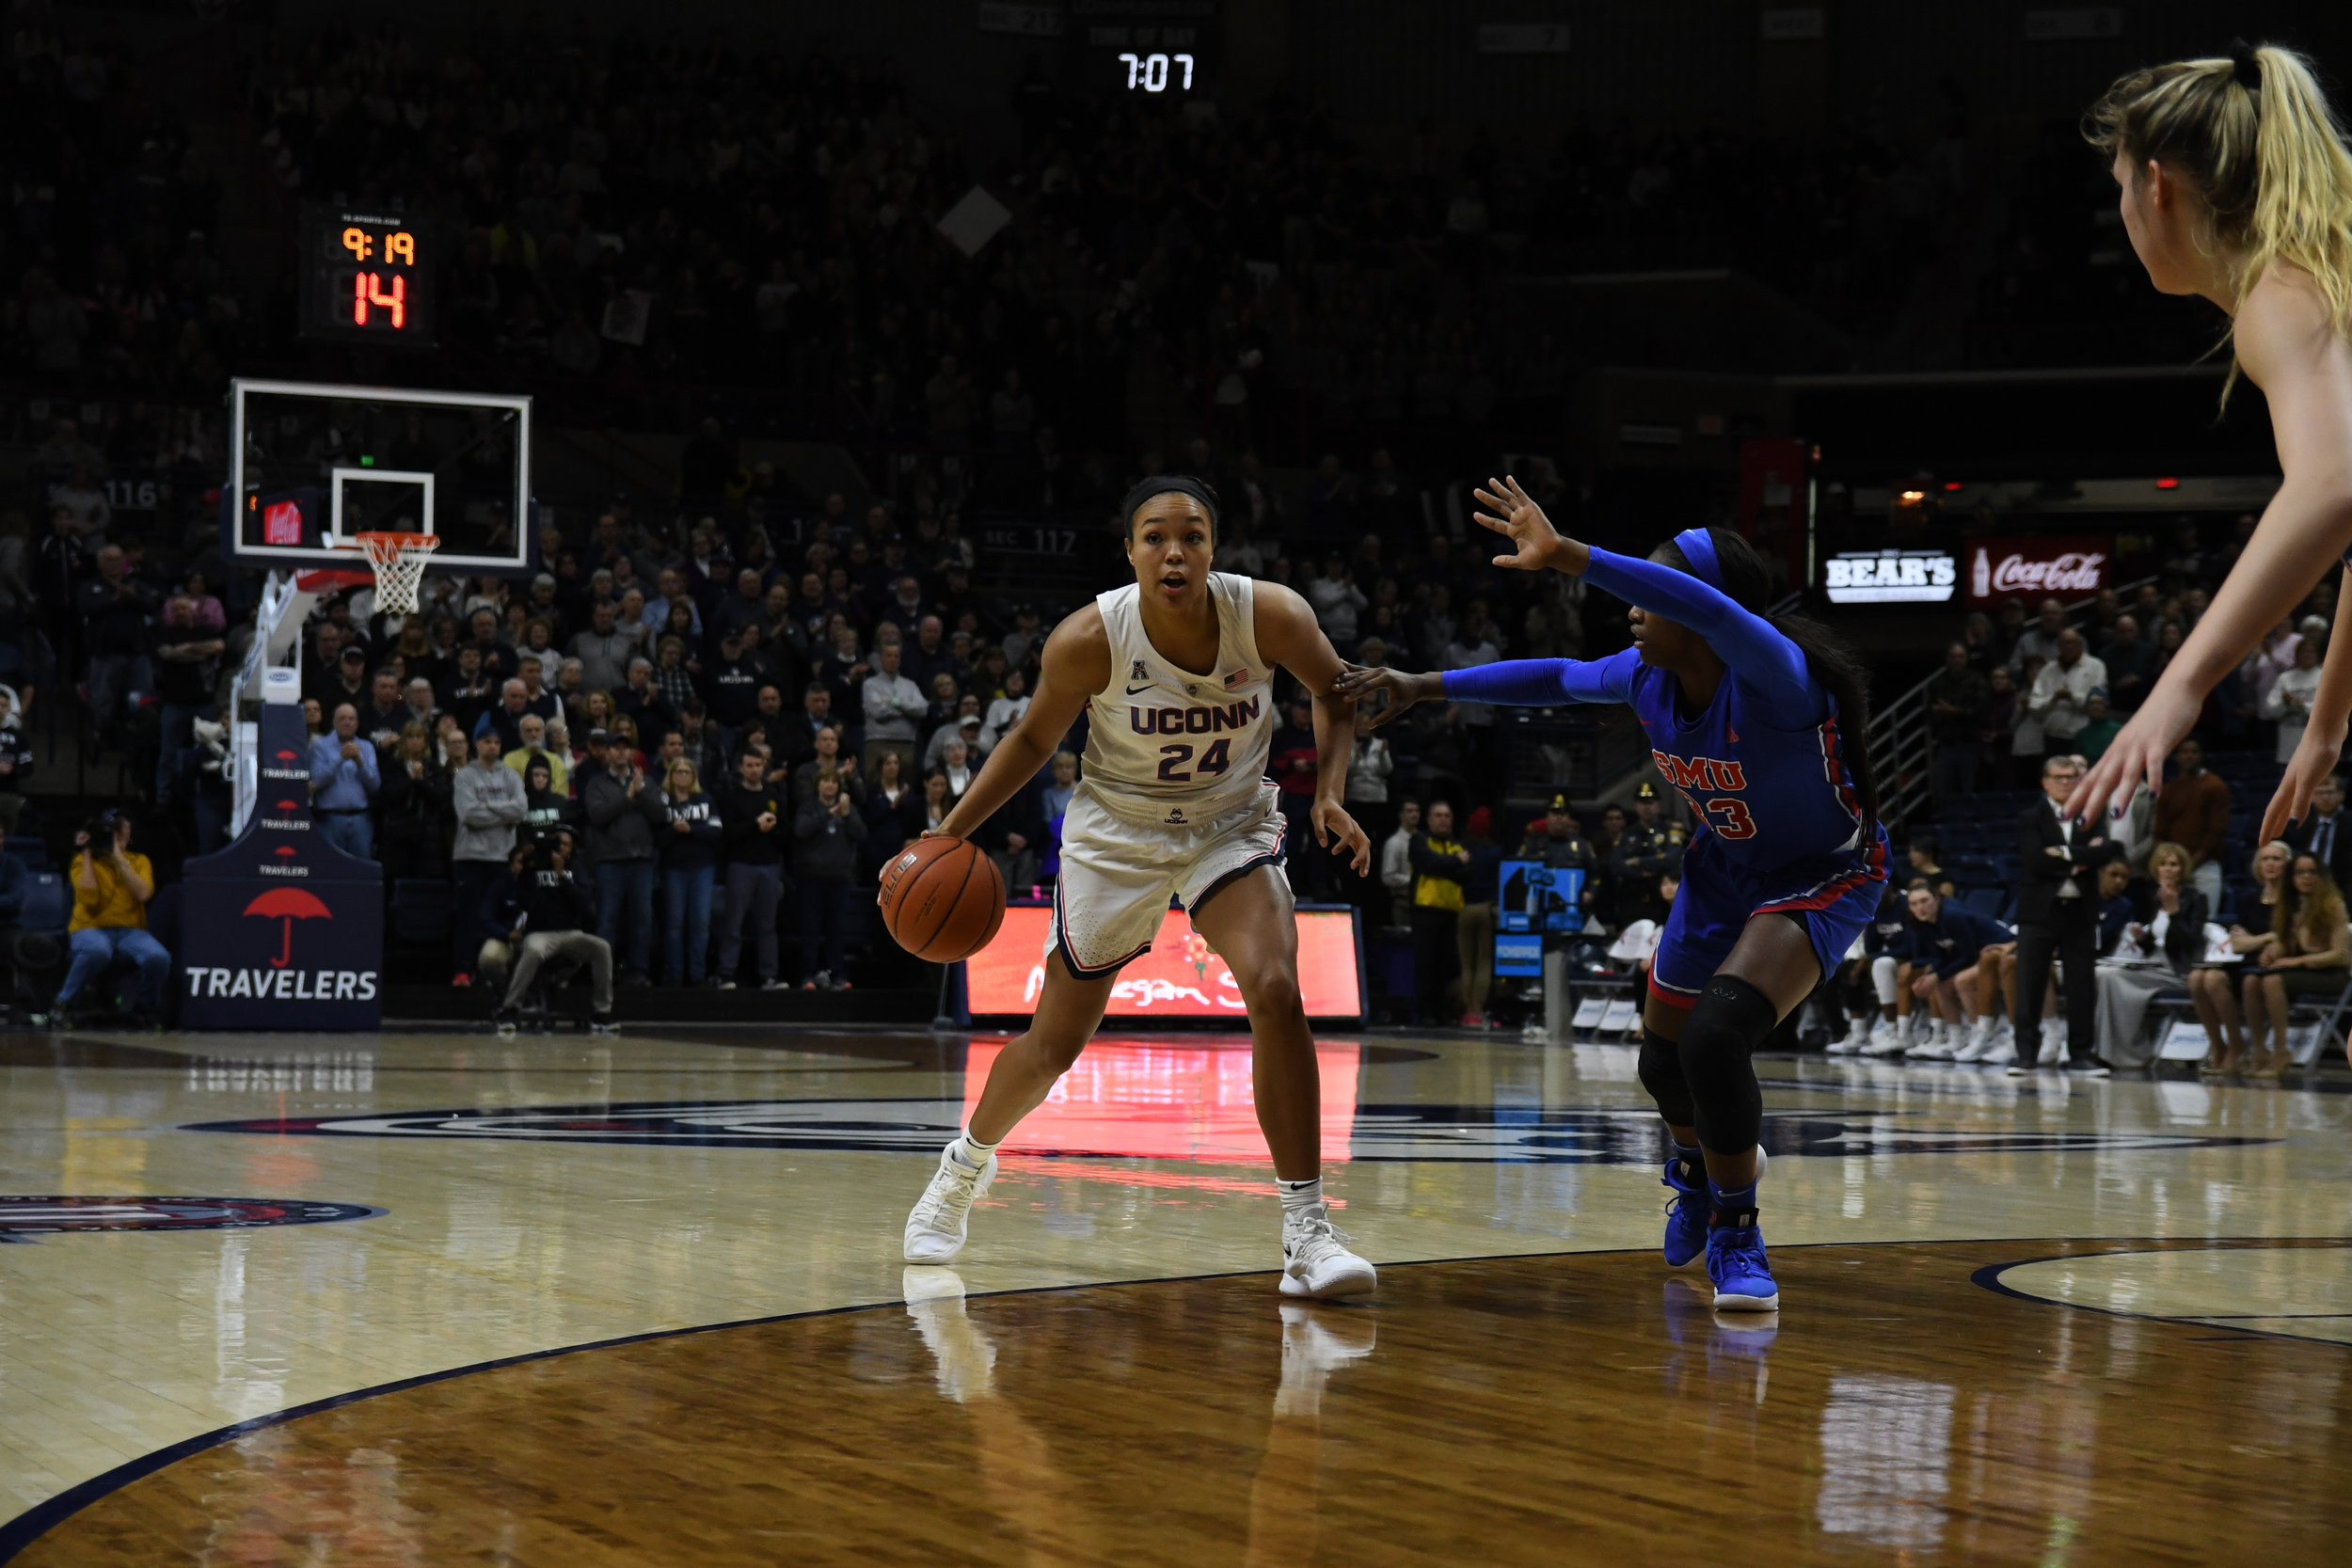 Napheesa Collier named AAC player of the week in her stellar effort against UCF (Photo by Nicholas Hampton/The Daily Campus)